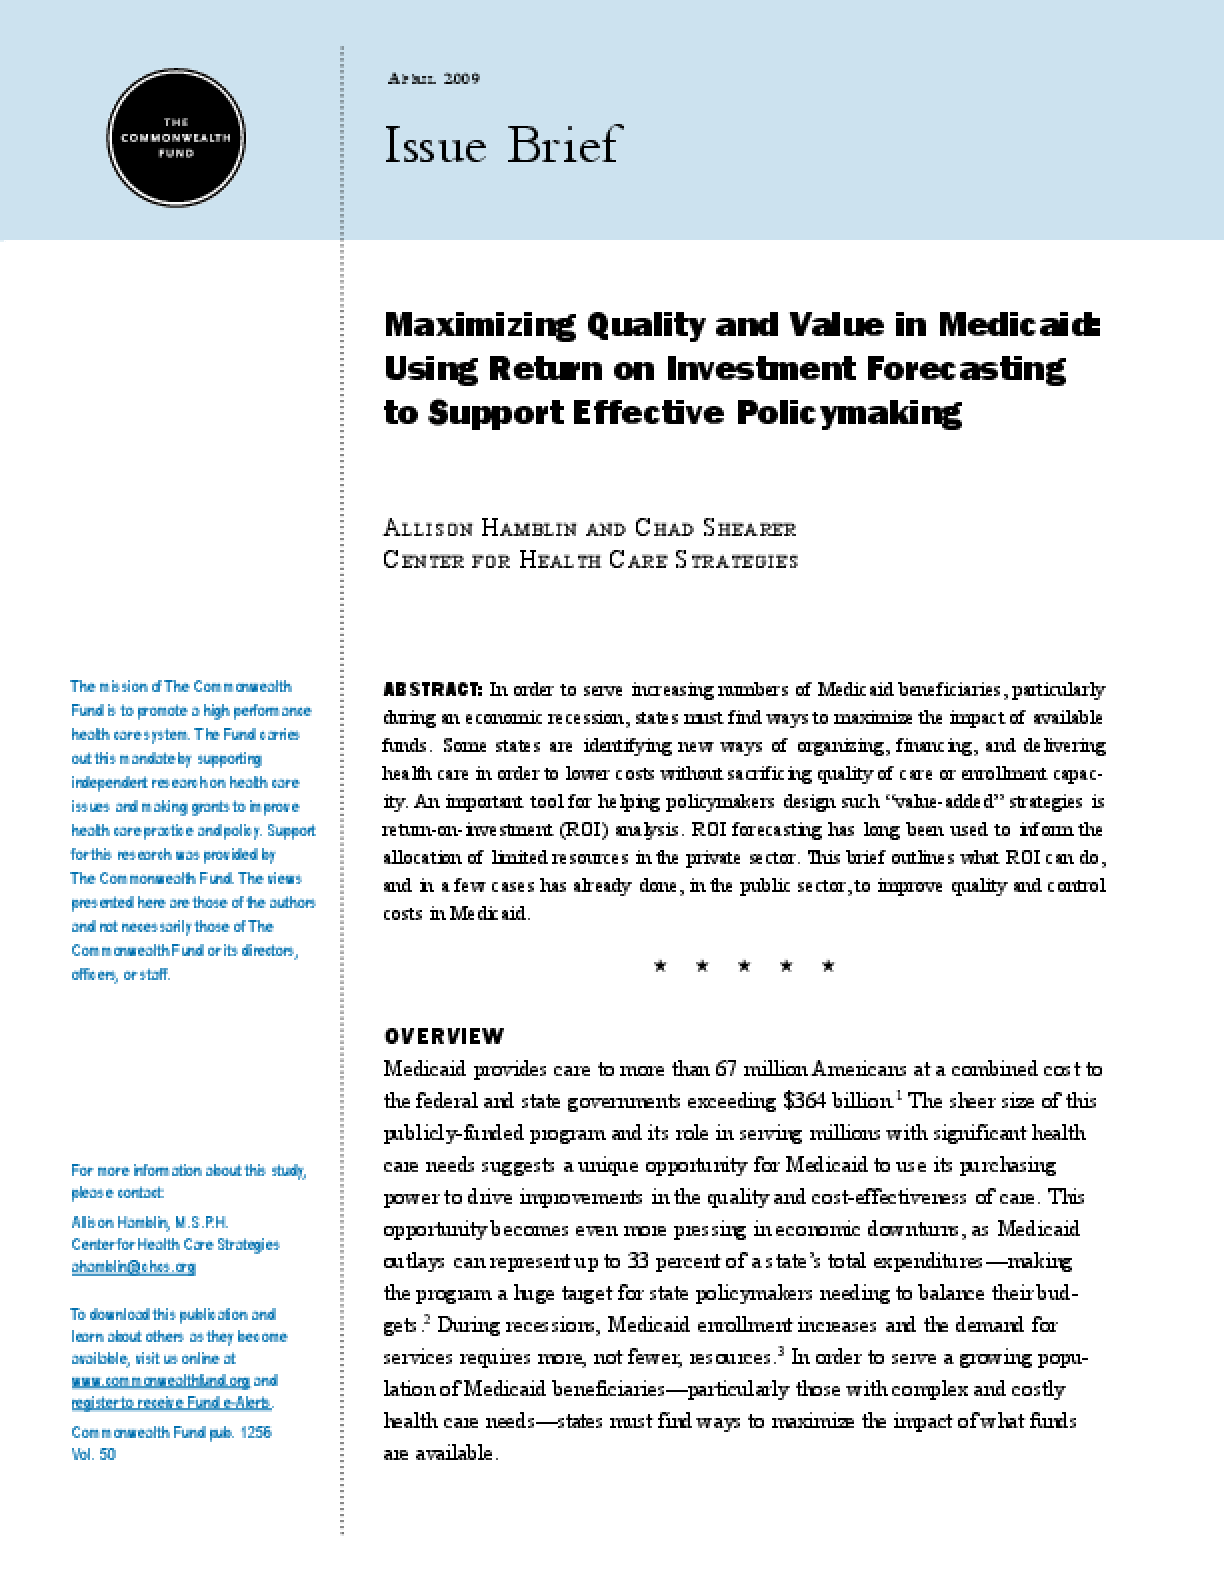 Maximizing Quality and Value in Medicaid: Using Return on Investment Forecasting to Support Effective Policymaking